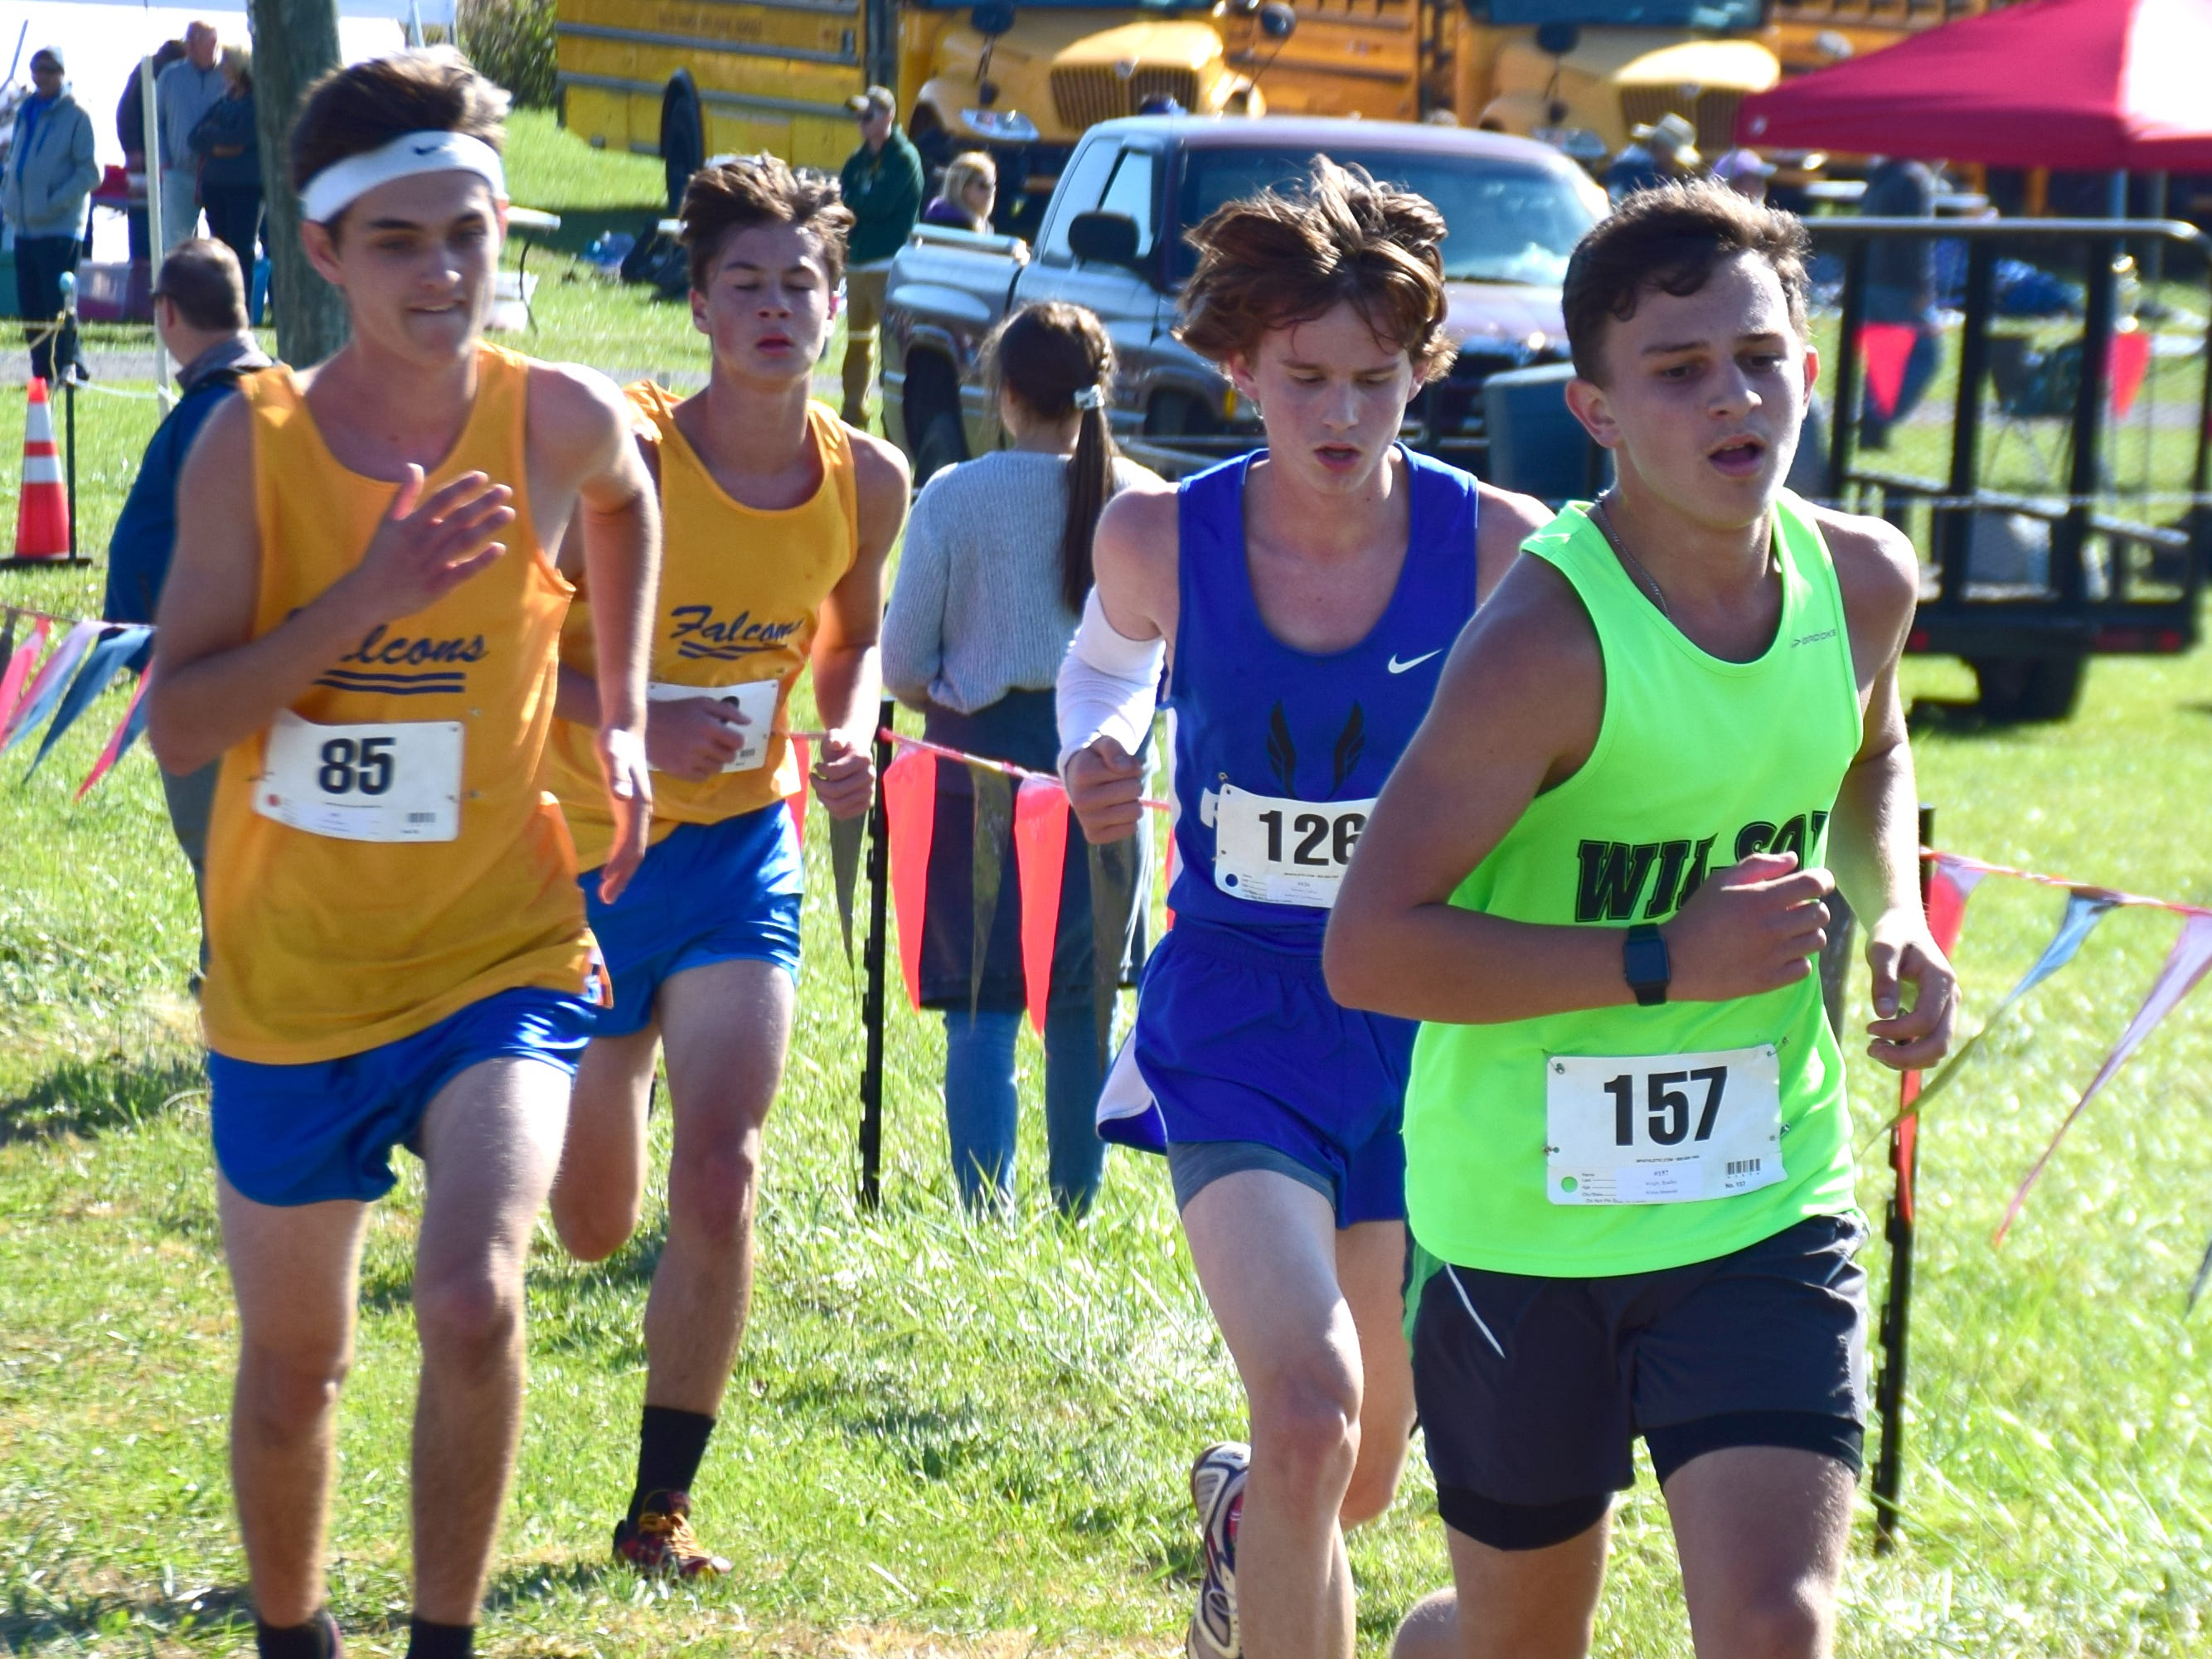 From right, Wilson Memorial's Bradley Wright and Robert E. Lee's Calvin Siemers compete in the boys race at the VHSL Class 2, Region B Cross Country Championships on Tuesday, Oct. 30, 2018, at New Market Battlefield Park in New Market, Va.